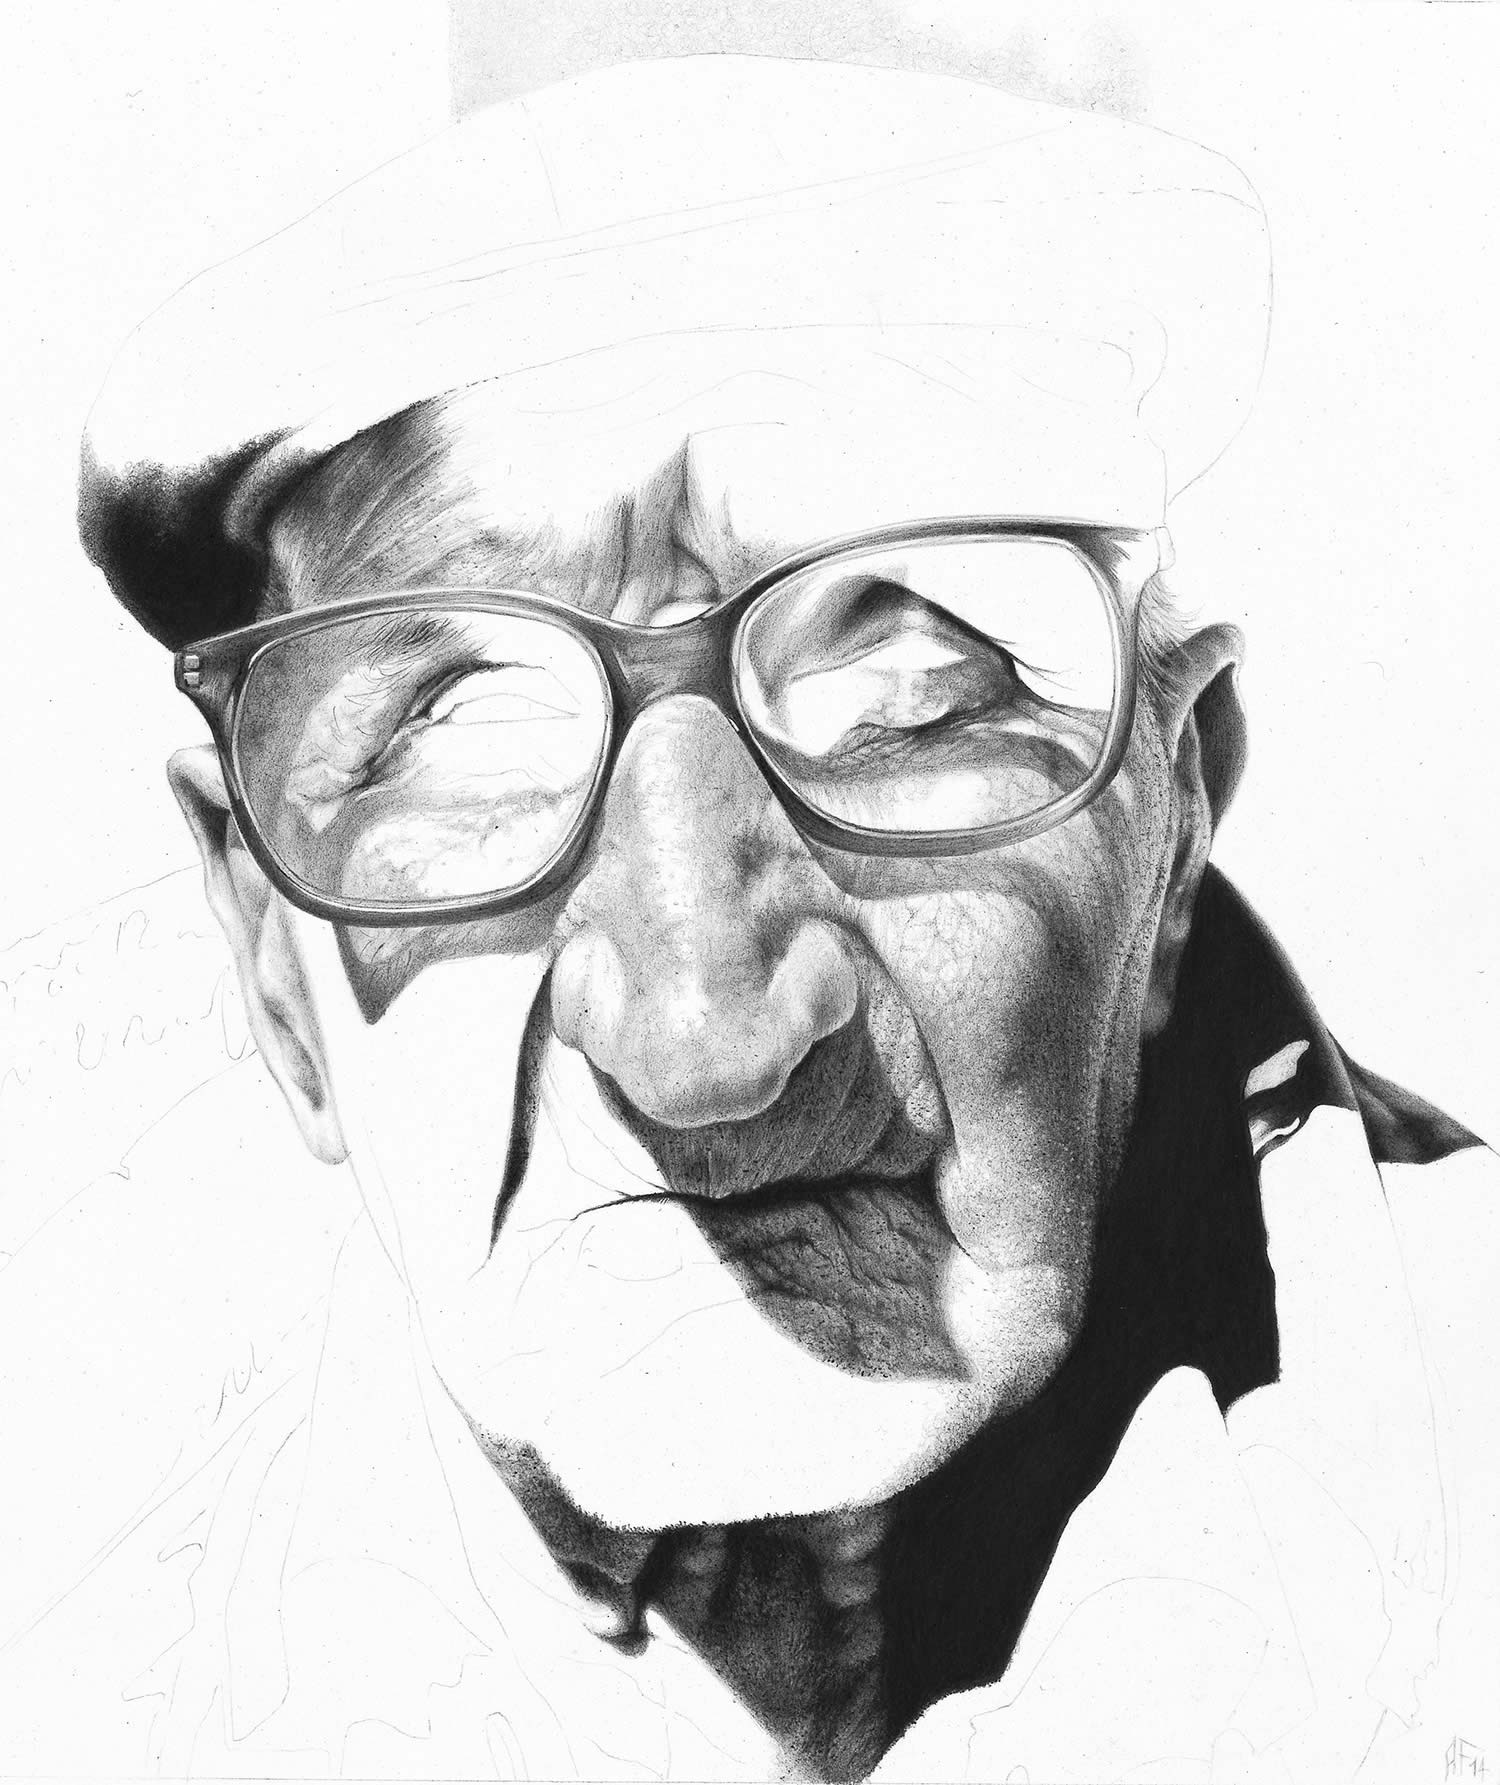 man with glasses, pencil art by antonio finelli